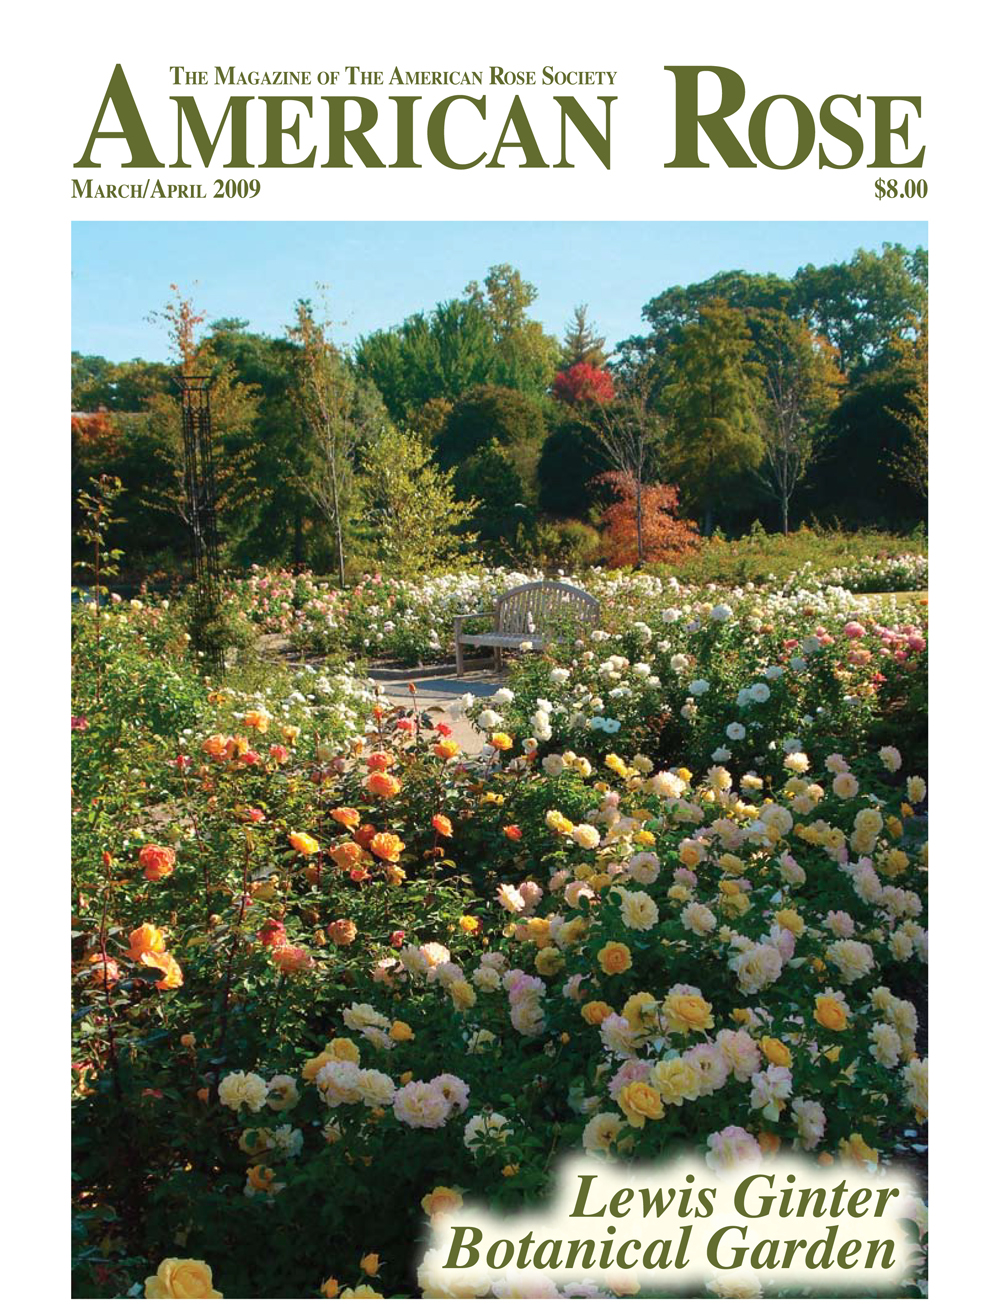 The Cochrane Rose Garden graced the cover of American Rose magazine (March/April 2009)